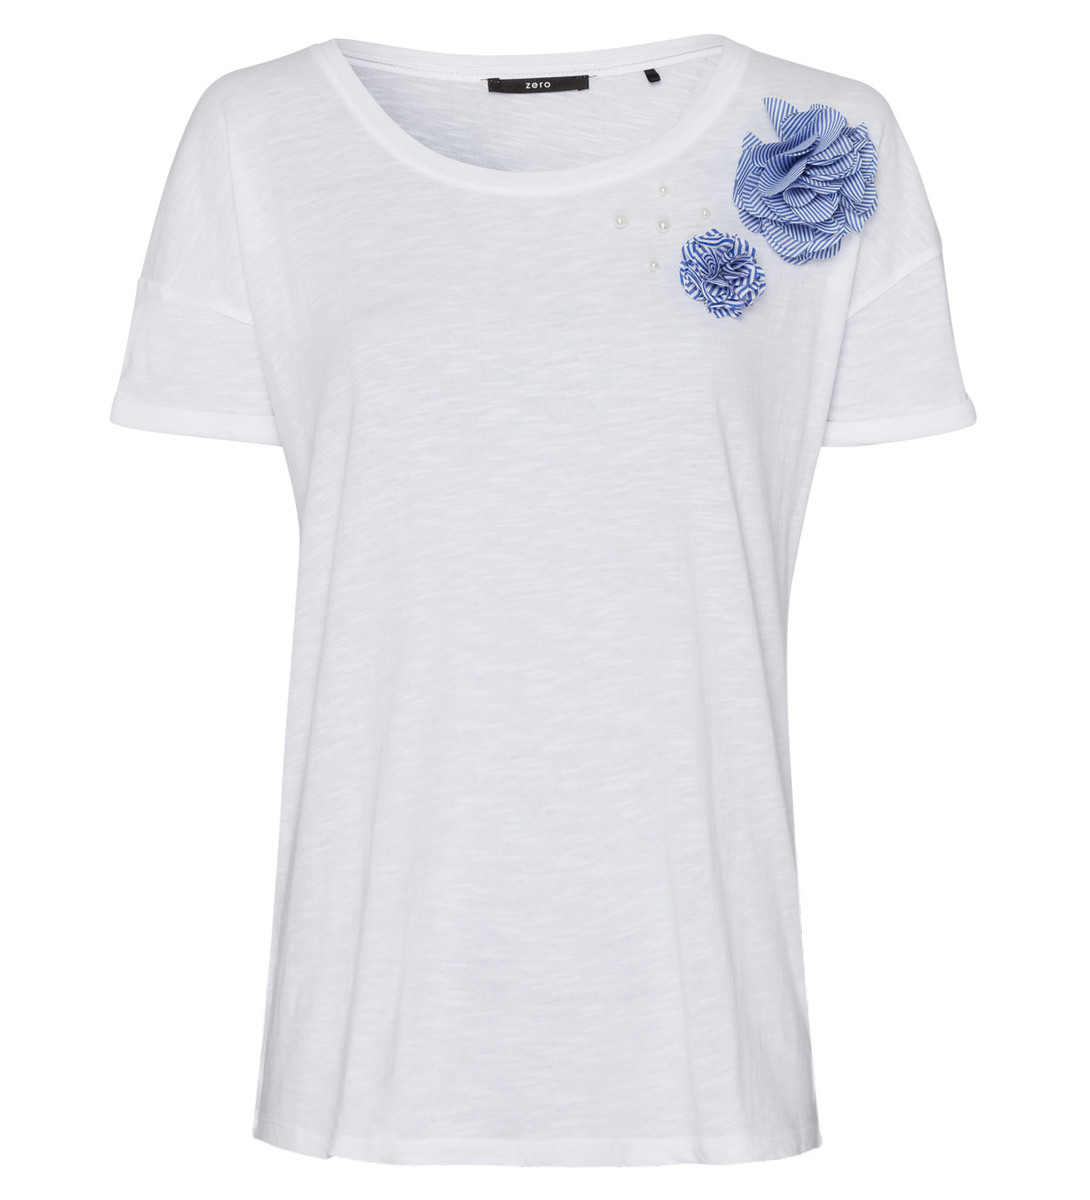 T-Shirt mit Applikationen in white